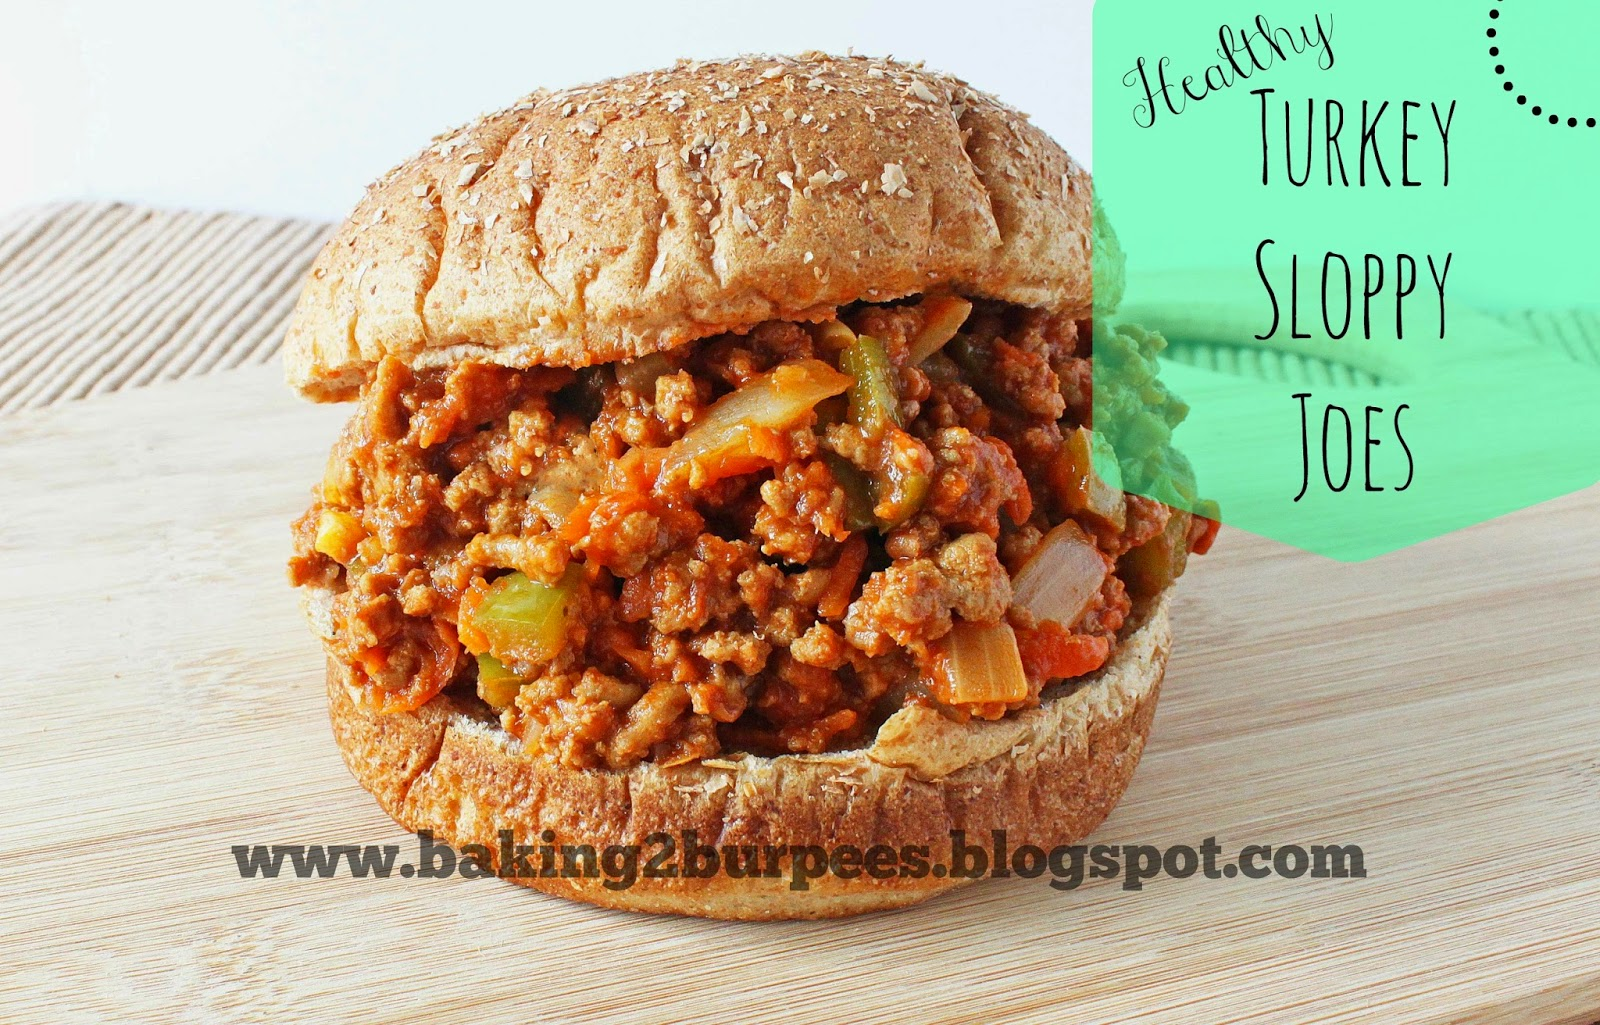 Erin Traill, diamond beachbody coach, clean sloppy joes, sloppy joes, clean eating, healthy recipe, crock pot recipe, quick healthy meal, clean eating sandwich, fit mom, nurse, pittsburgh